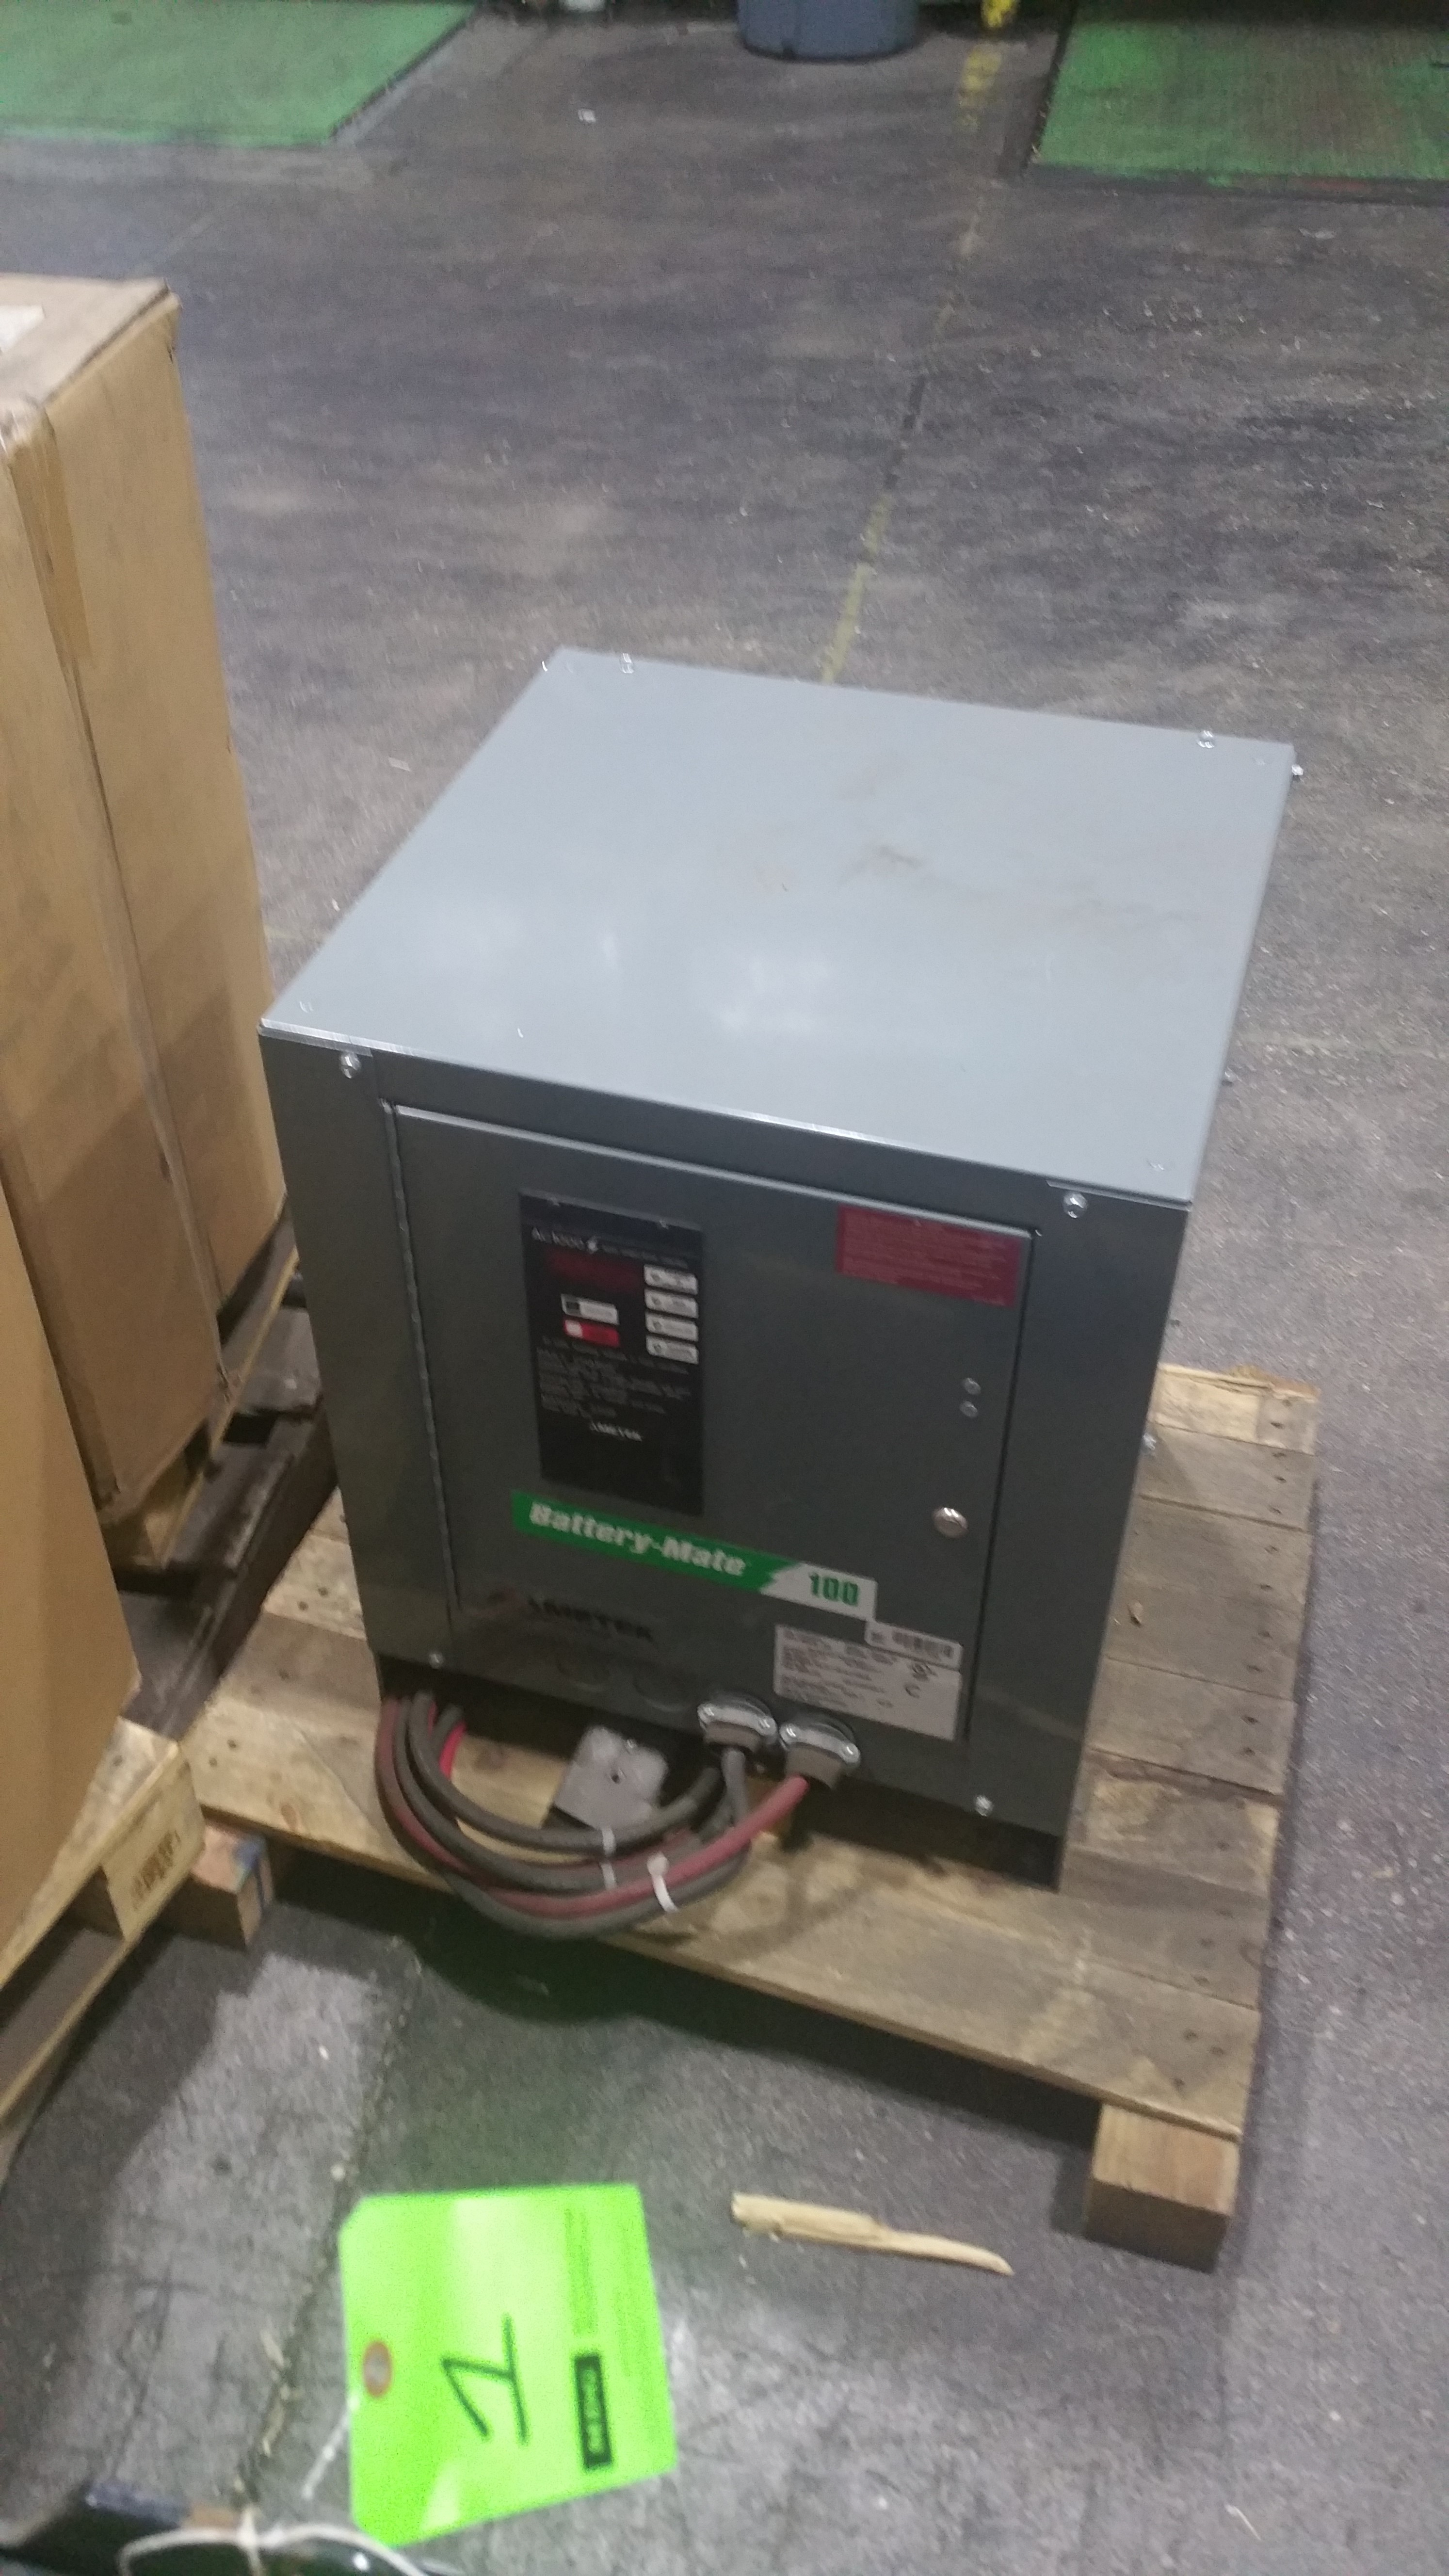 Lot 30 - NEW Battery Mate 100 Charger with AC 1000 Controls Tagged Lot 5 (Located in Indiana)